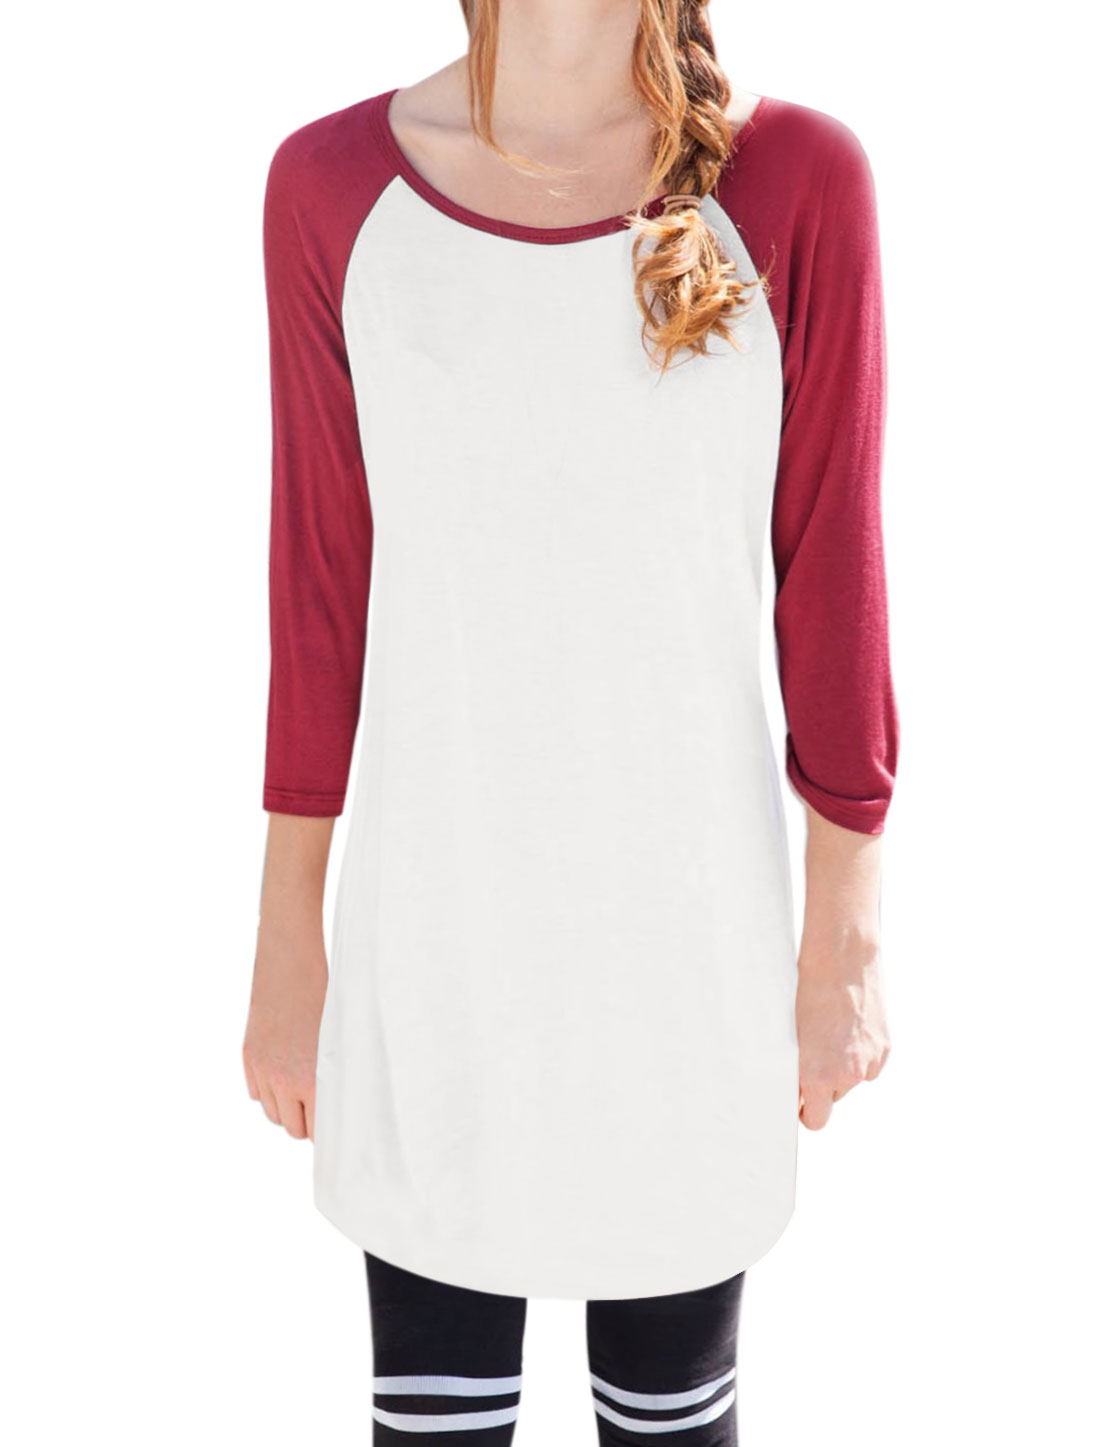 Women Contrast Color Raglan Sleeves Tunic Tee Shirt White XS